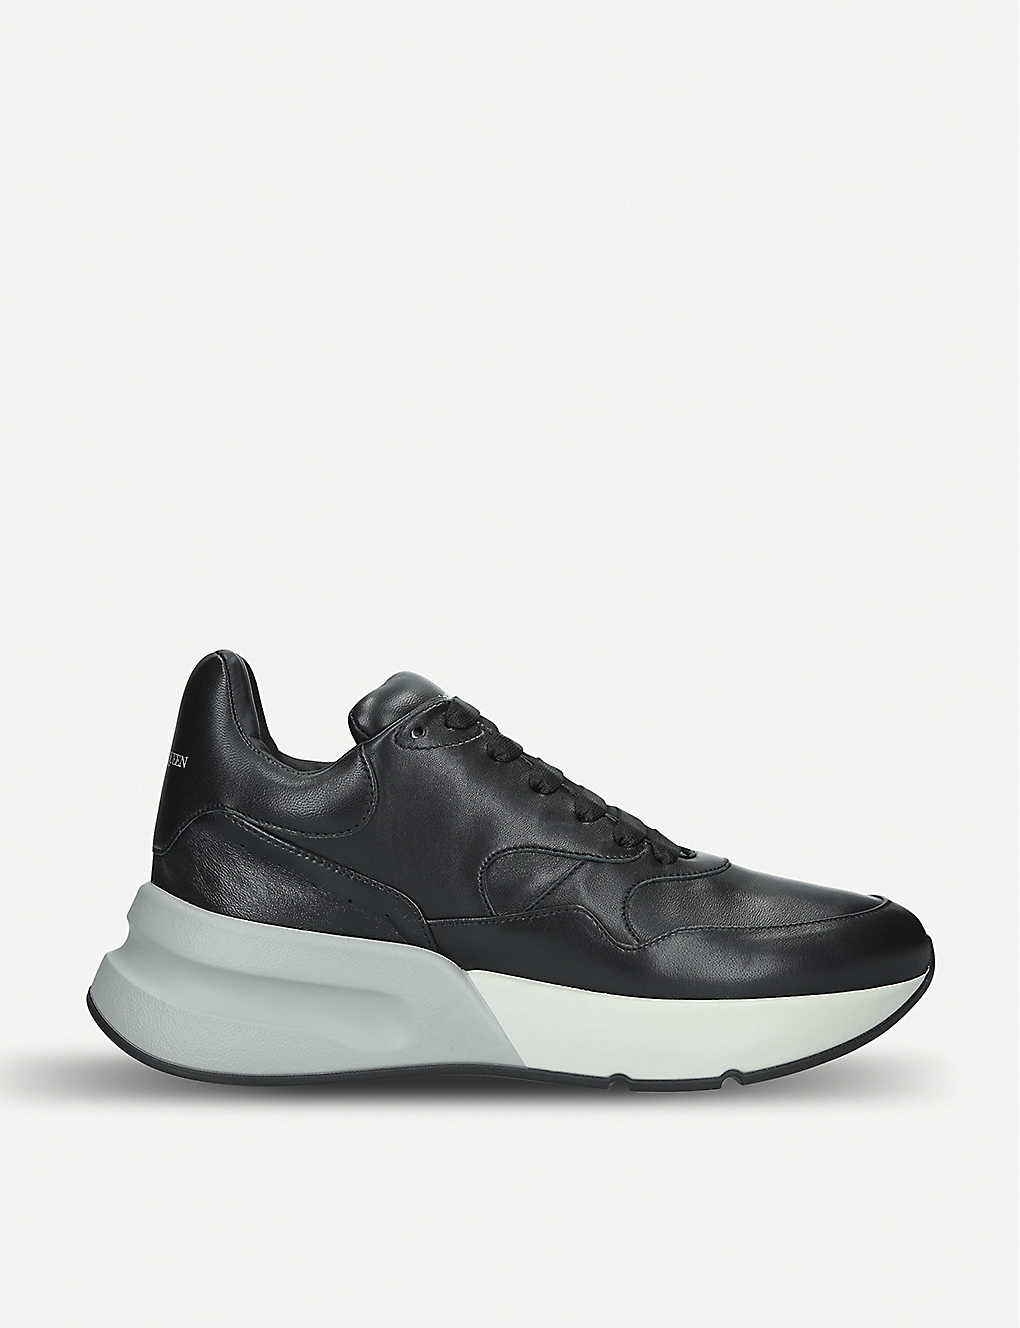 10d03a8f618bd ALEXANDER MCQUEEN - Mens Runner wedge sole leather trainers ...